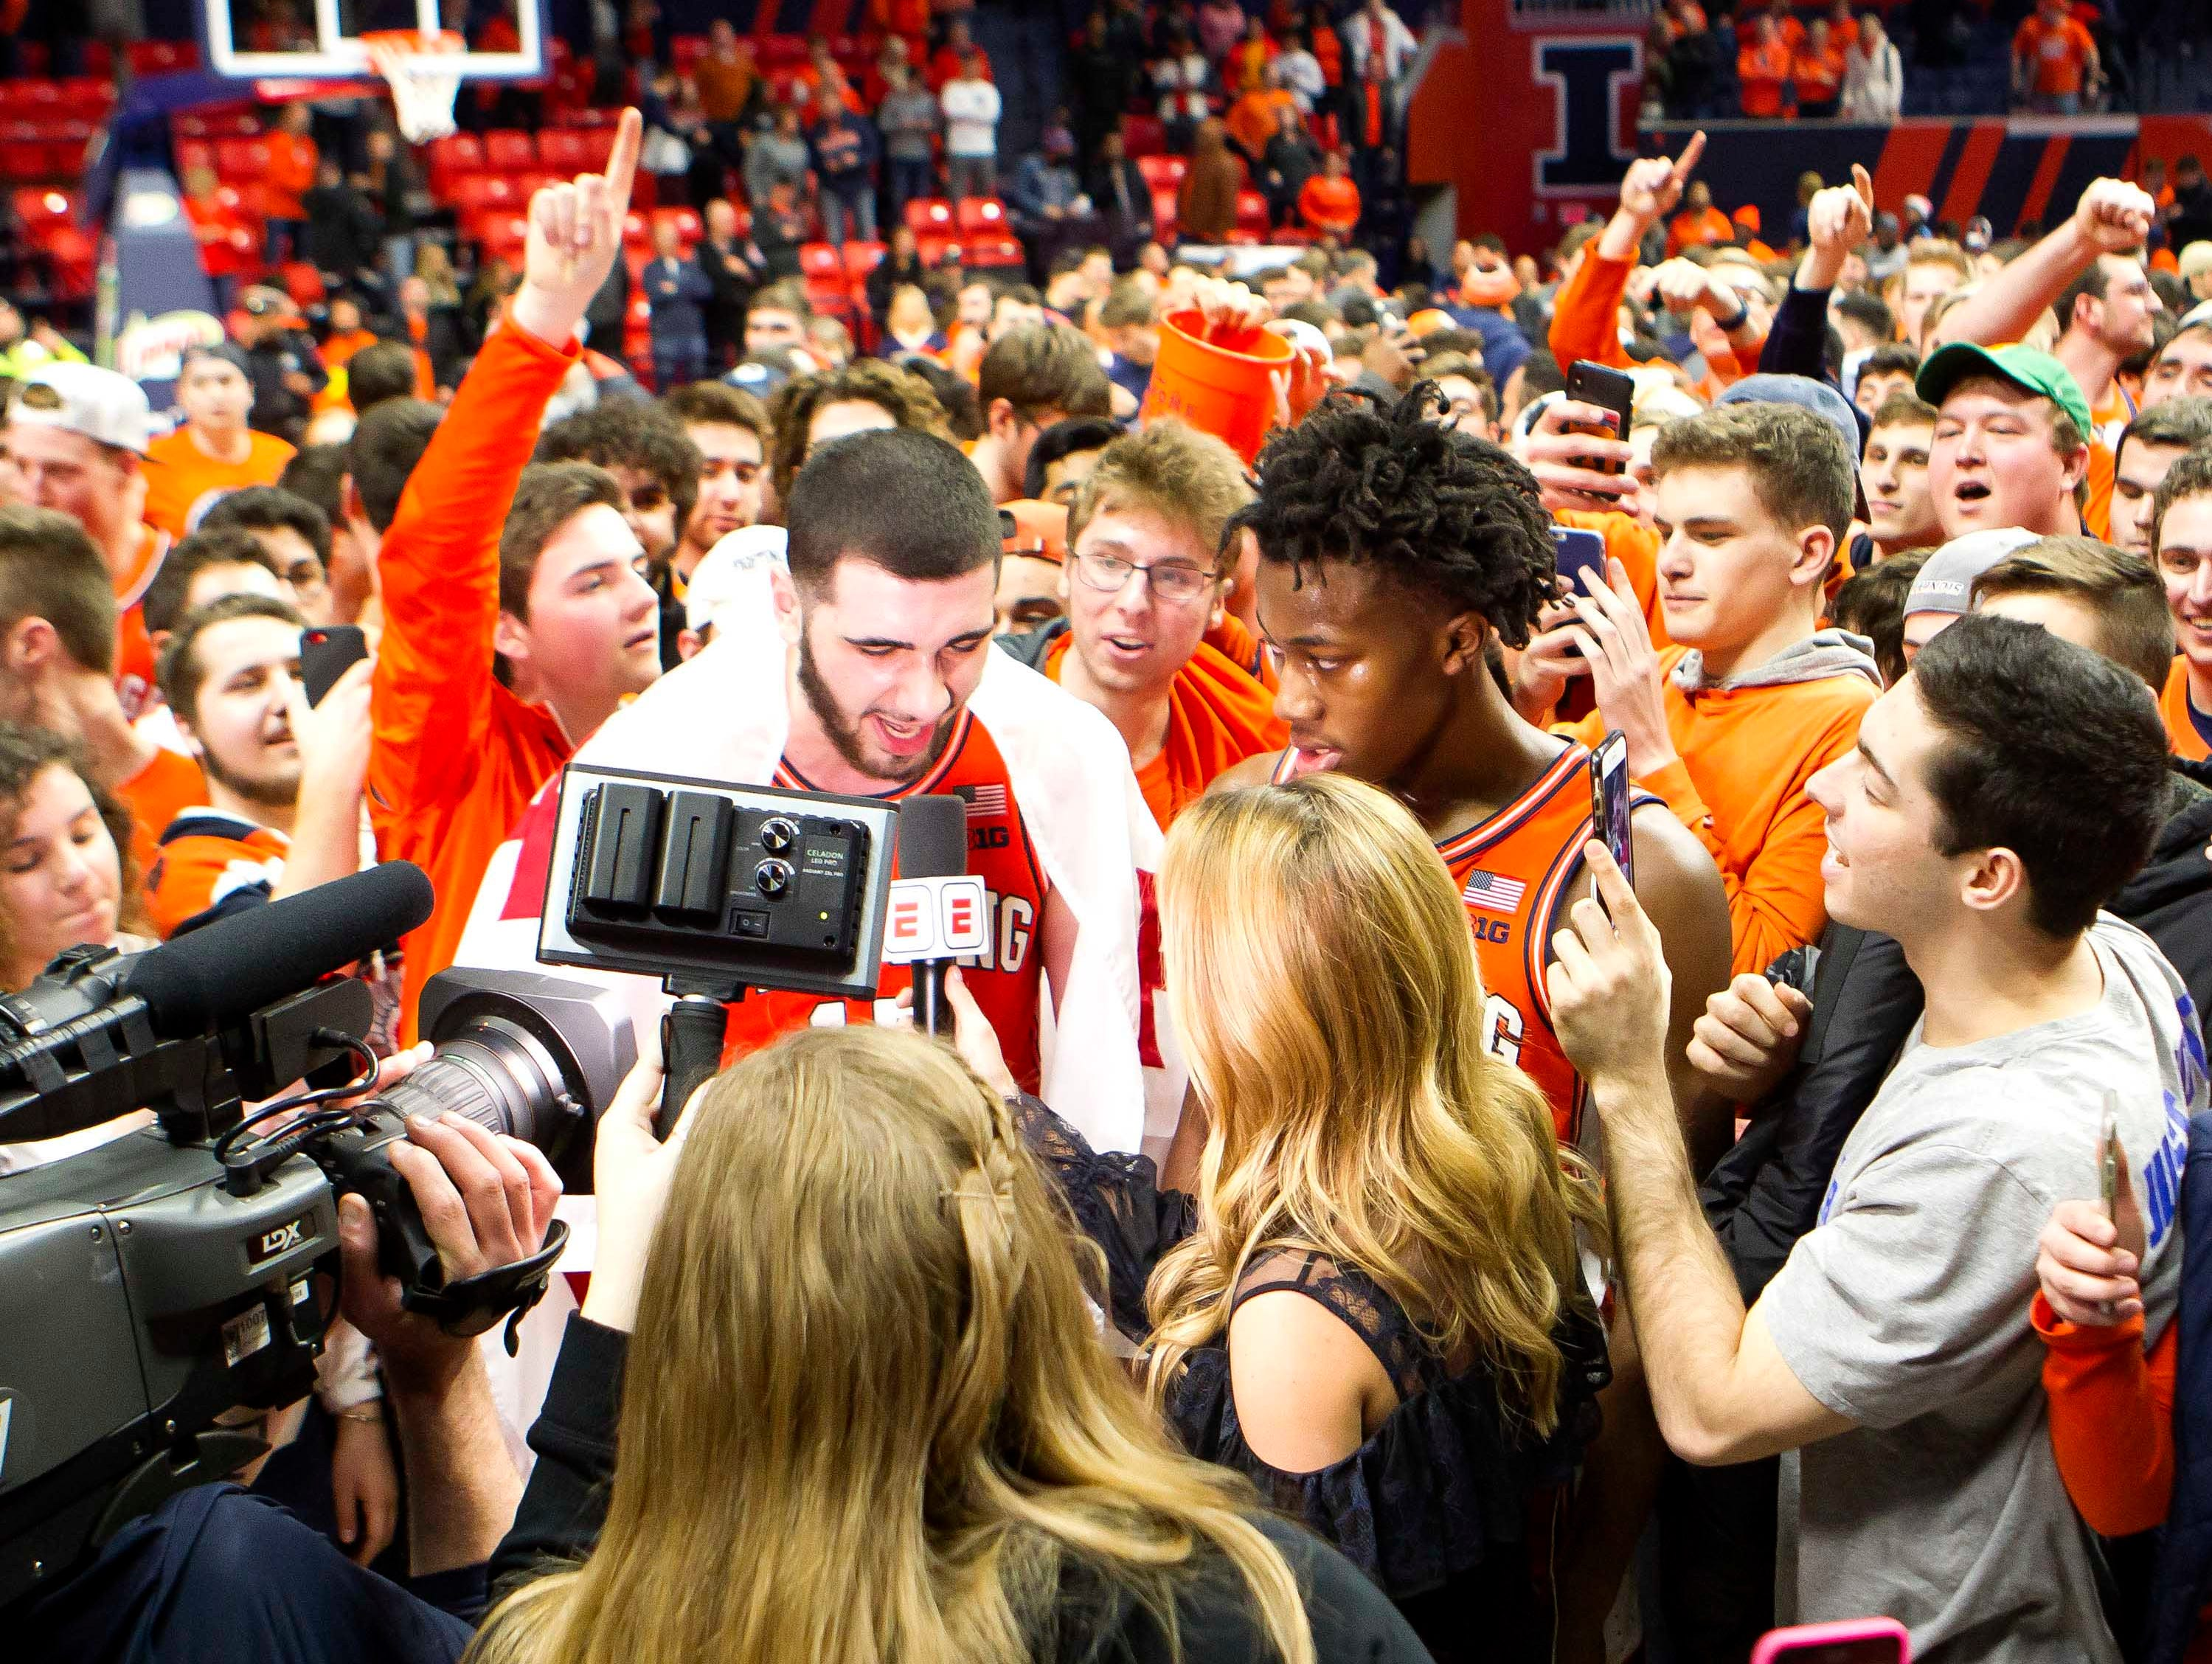 Feb 5, 2019; Champaign, IL, USA; Illinois Fighting Illini forward Giorgi Bezhanishvili (15) and guard Ayo Dosunmu (11) are interviwed after the game against the Michigan State Spartans at State Farm Center. Mandatory Credit: Mike Granse-USA TODAY Sports